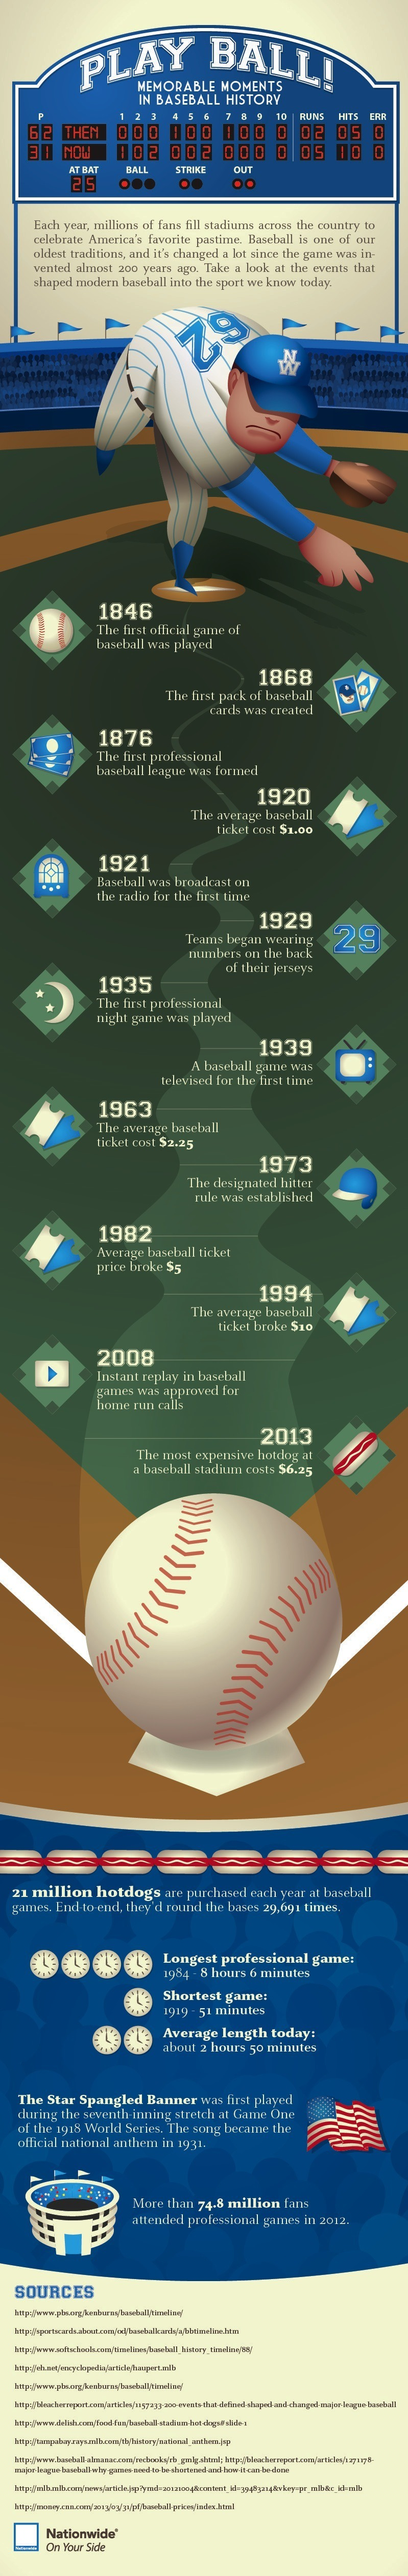 Baseball fun facts infographic.